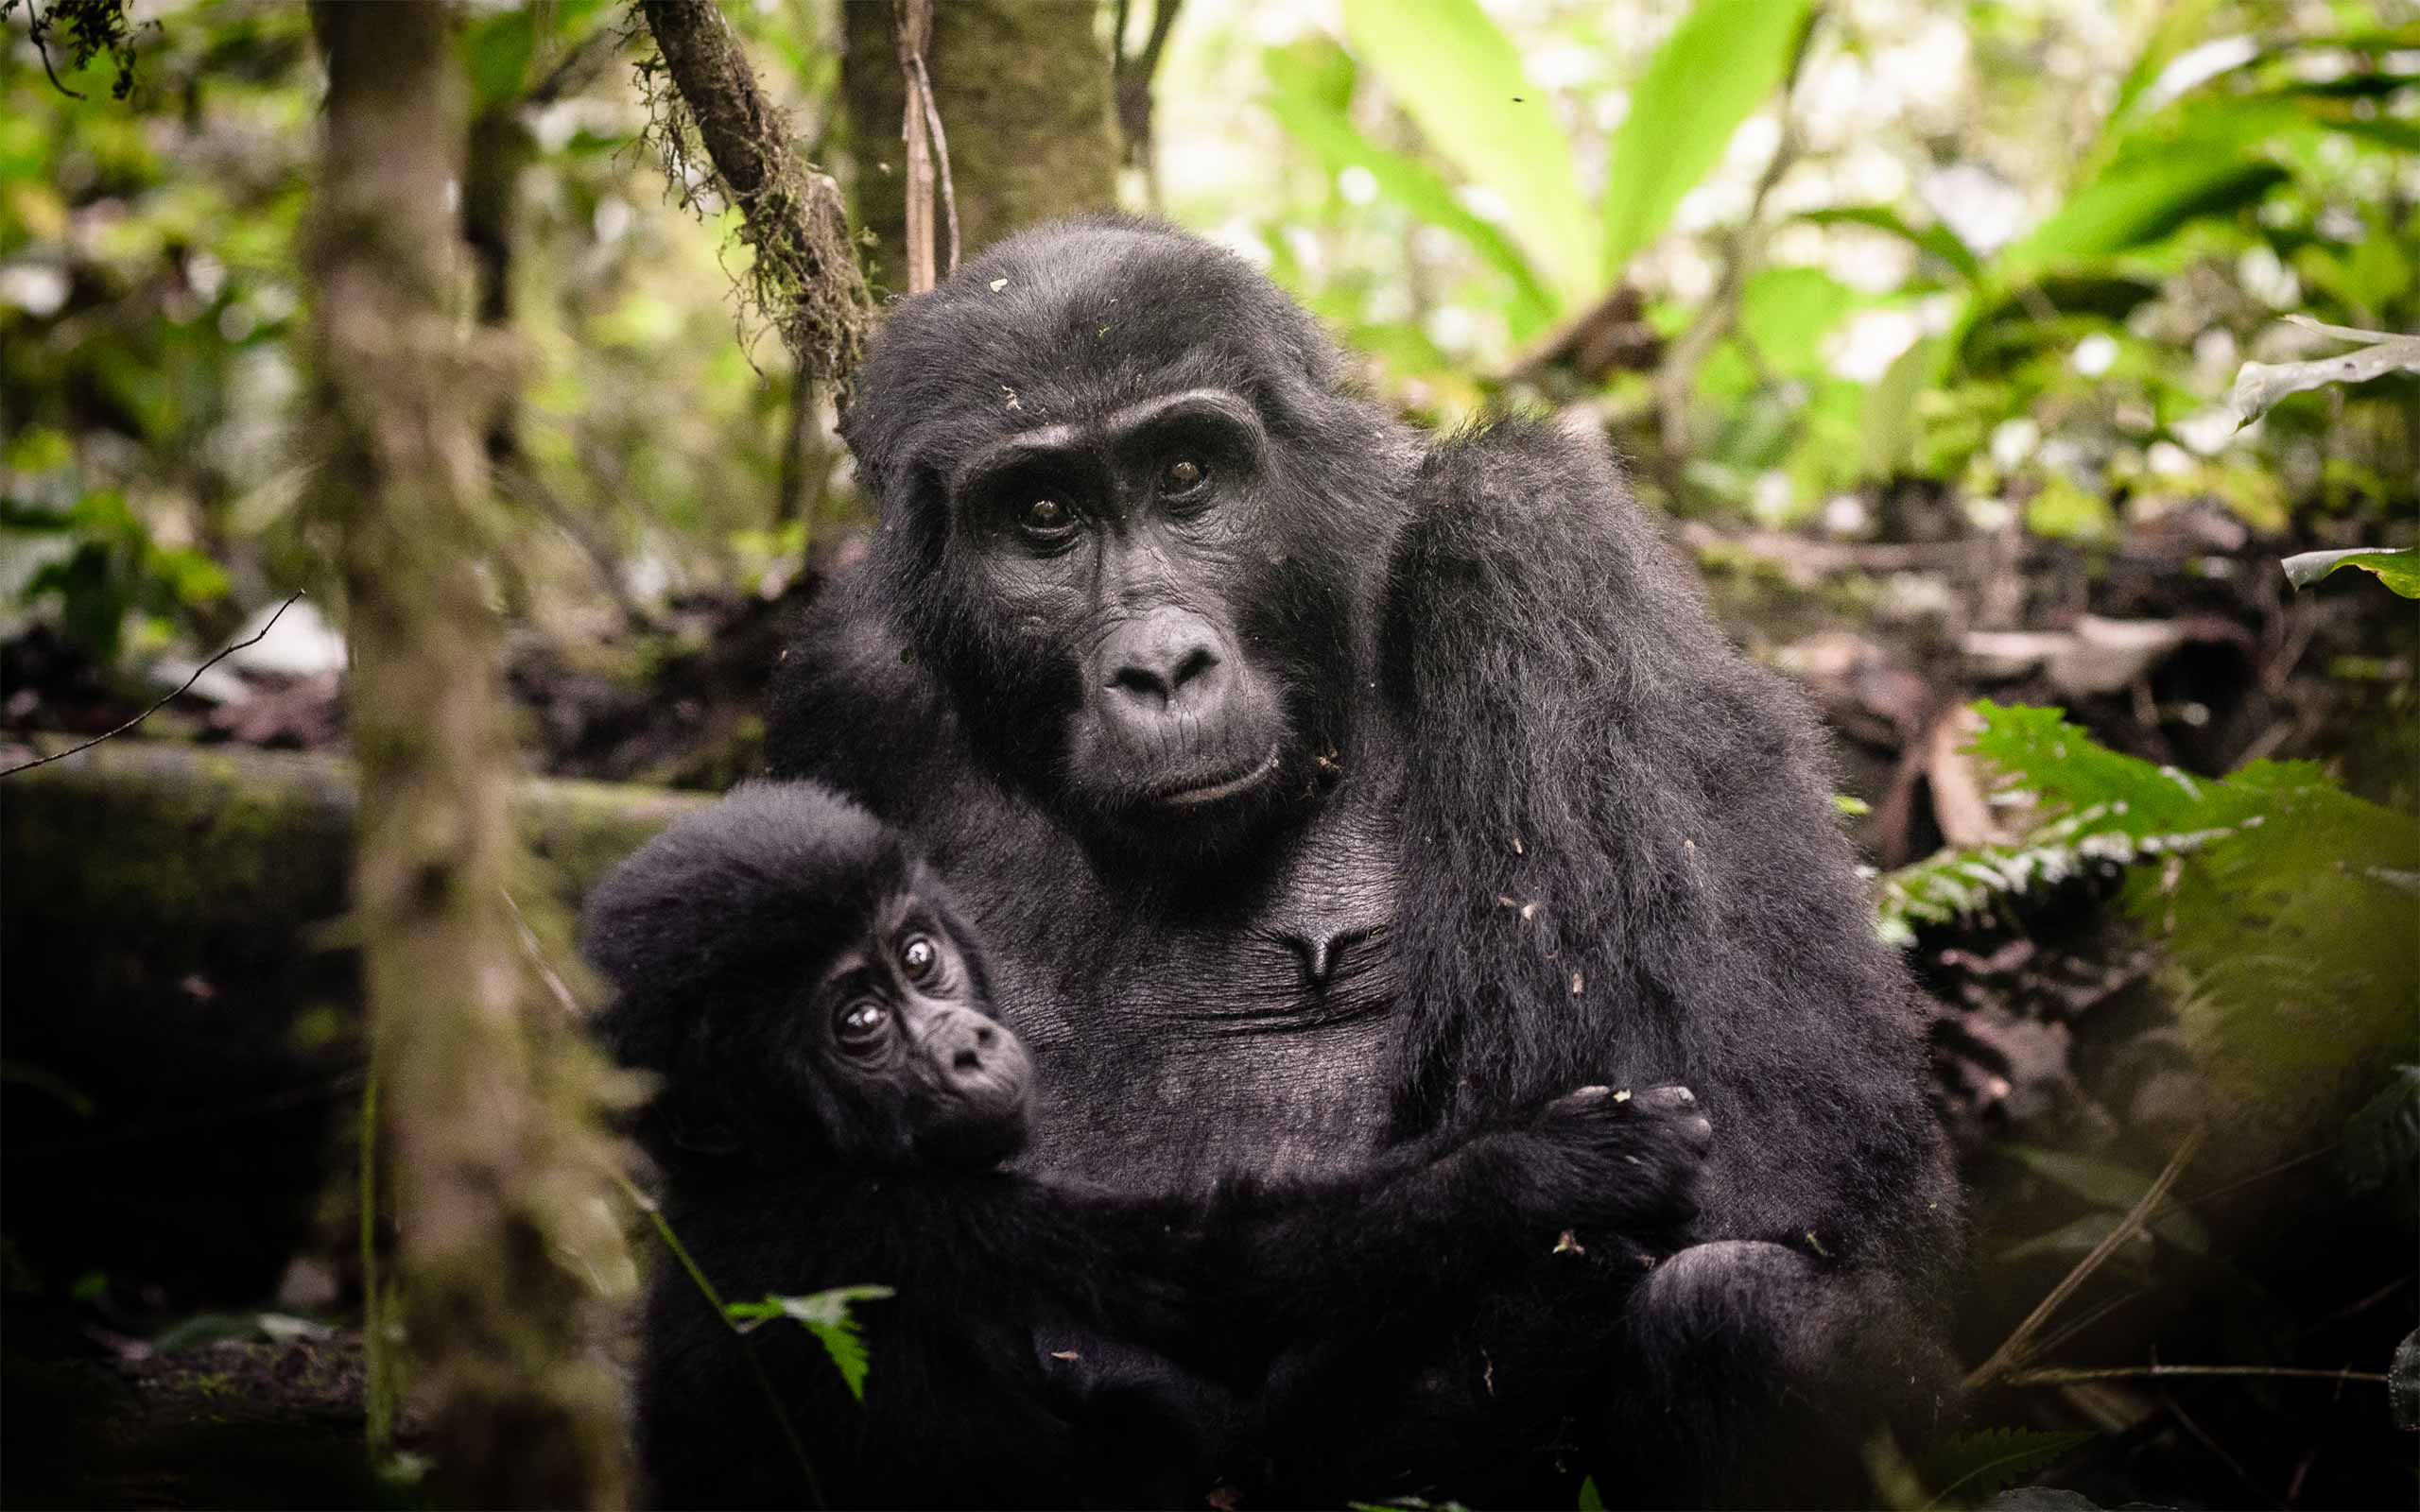 enkosi-africa-safari-uganda-bwindi-impenetrable-gorilla-forest-camp-sanctuary-